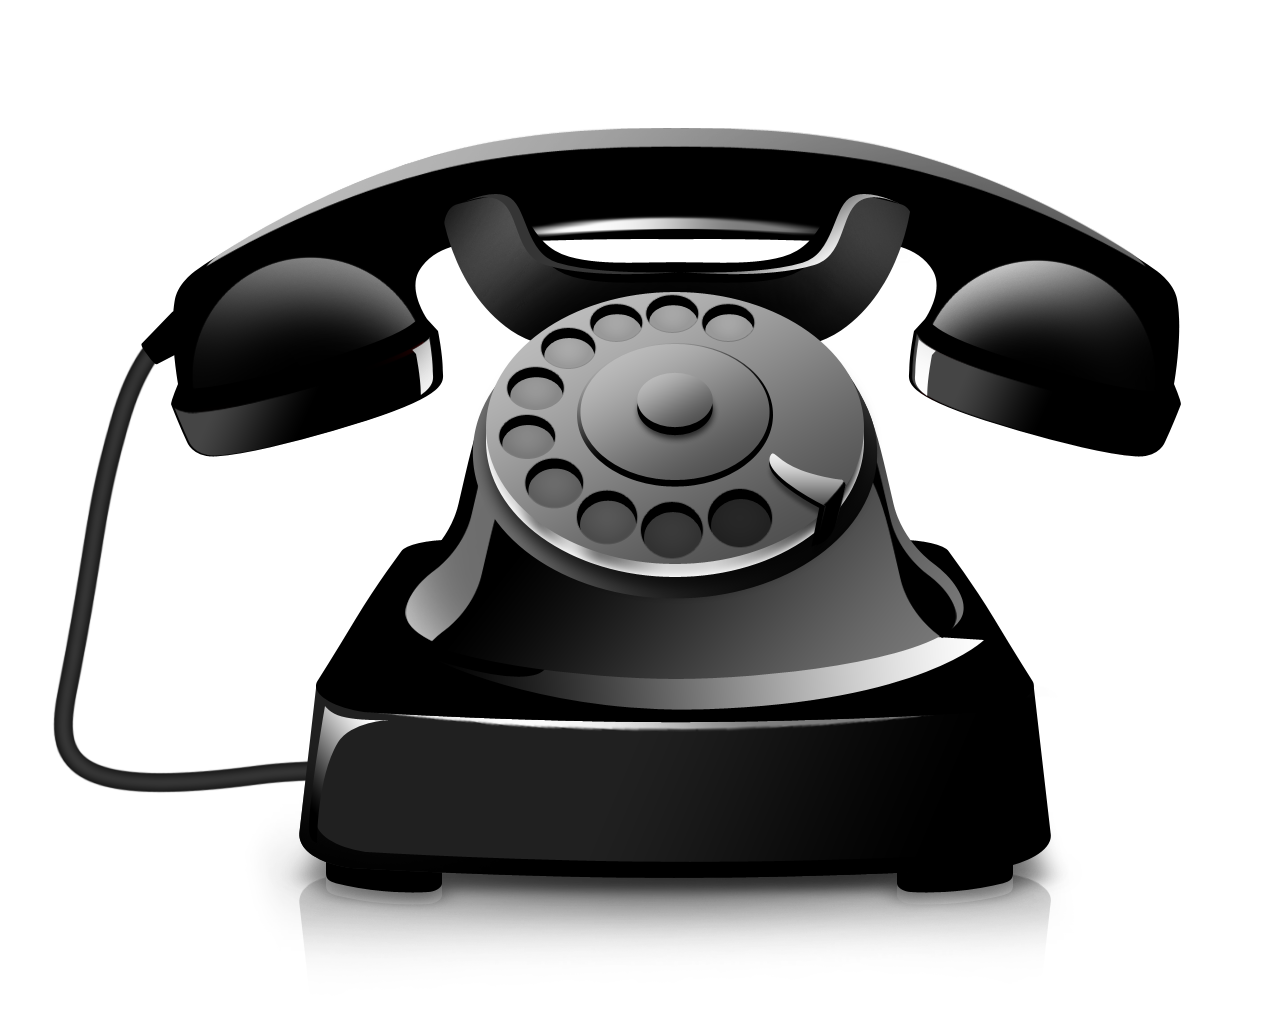 Black phone png image. Telephone clipart telephone cable